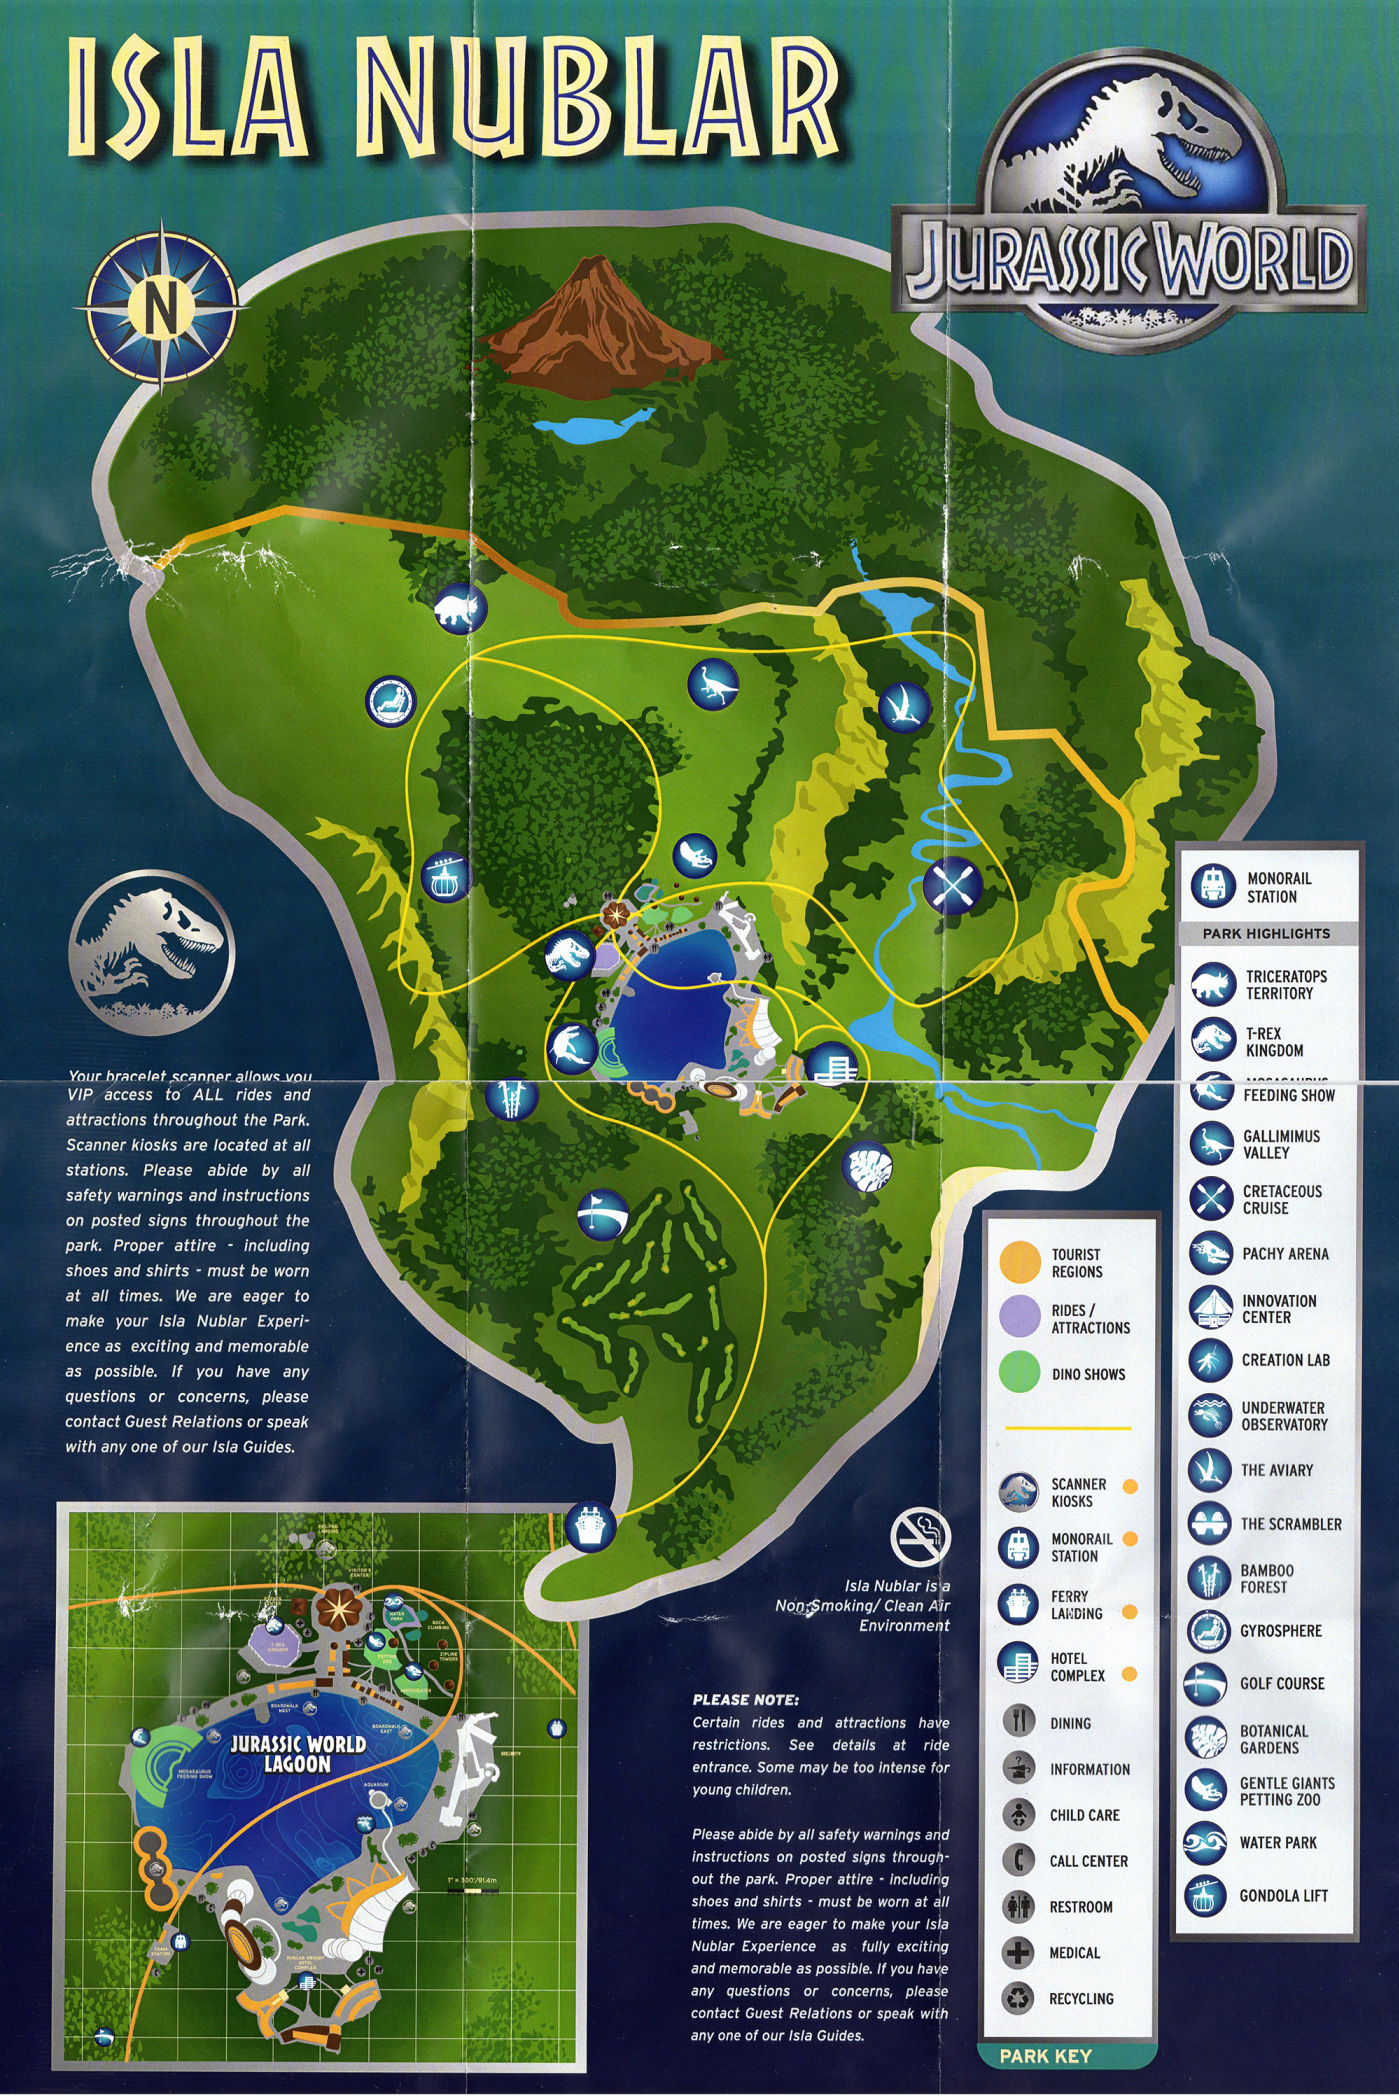 Image jurassic world map fullg jurassic park wiki fandom jurassic world map fullg gumiabroncs